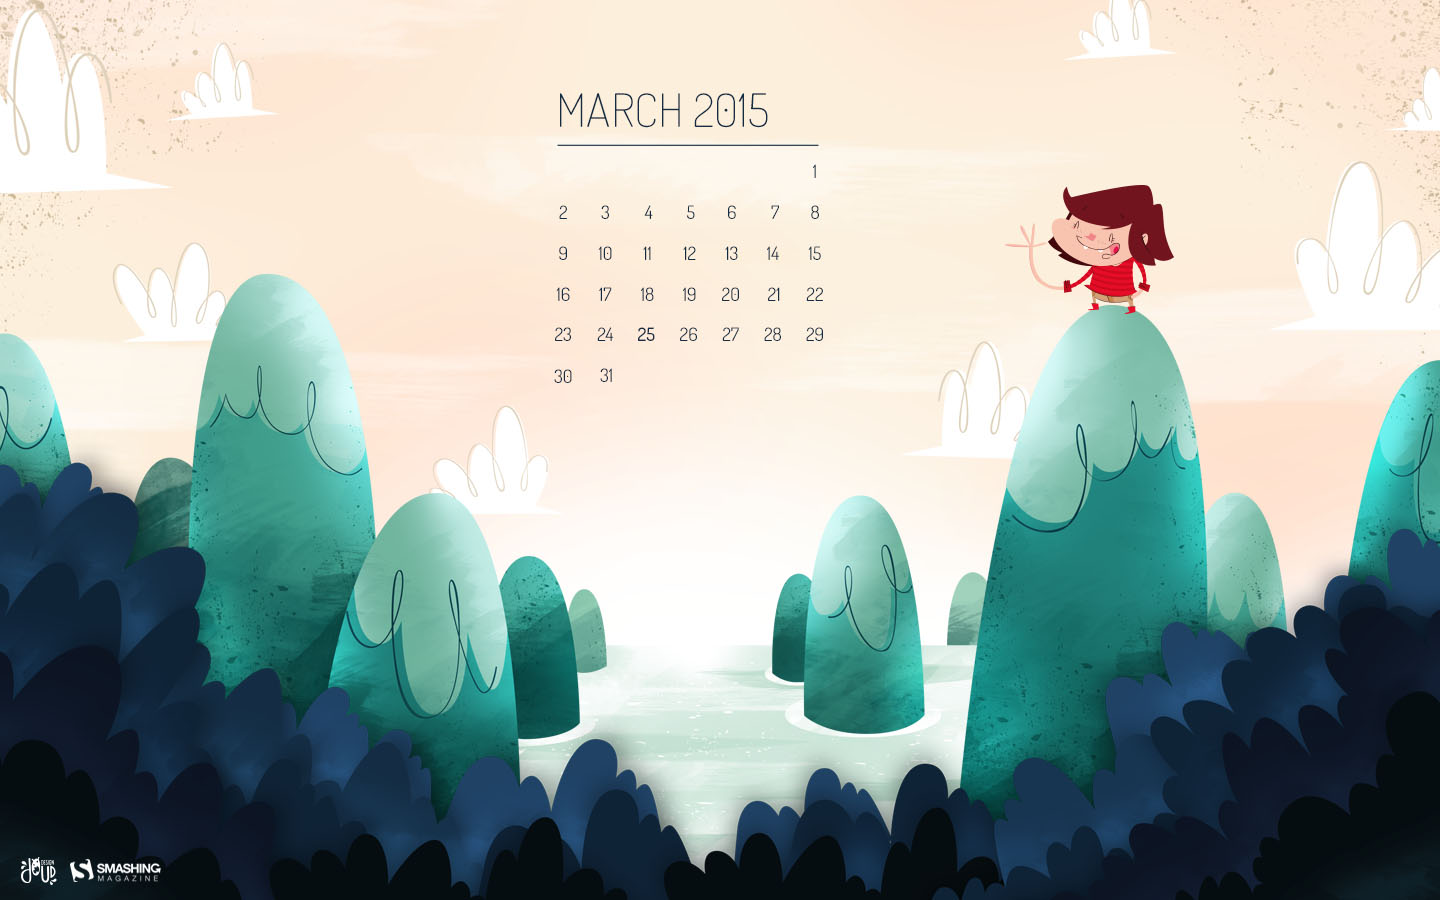 Desktop Wallpaper Calendars March 2015 Smashing Magazine 1440x900